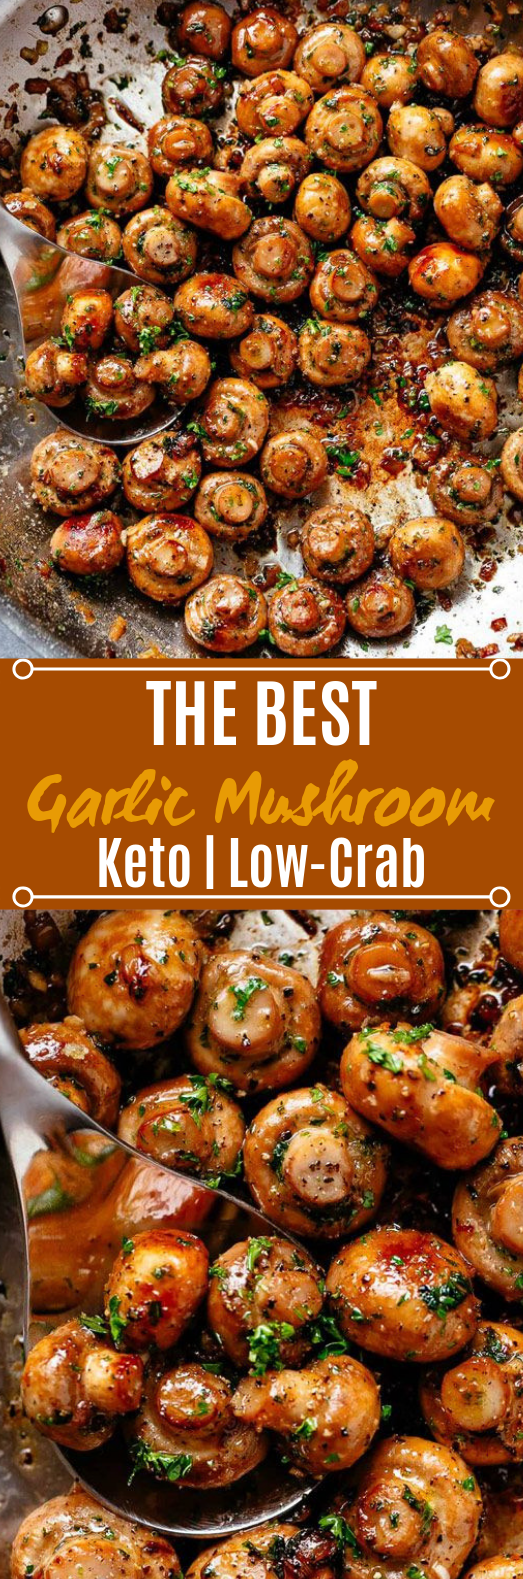 Buttery Garlic Mushrooms #sidedish #keto